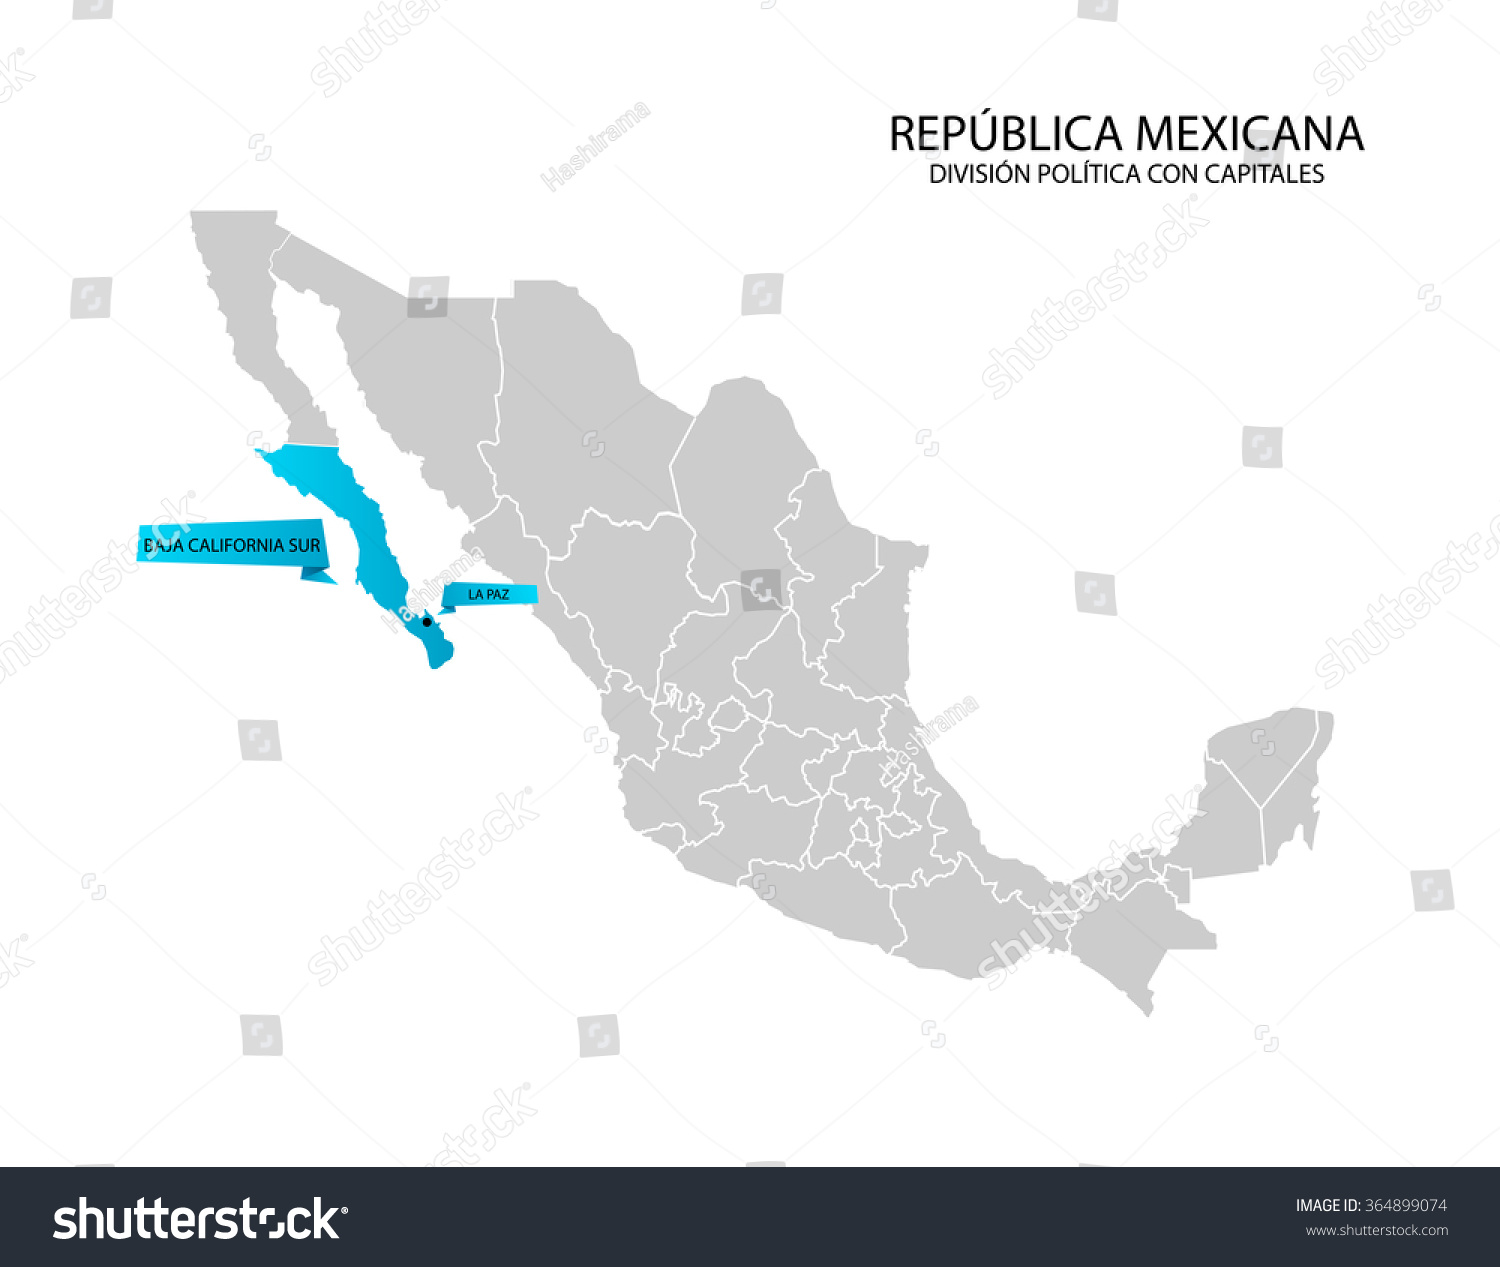 Mexico Map Baja California Sur Stock Vector (Royalty Free ... on mexico tour map, los algodones mexico map, san felipe mexico map, rio balsas mexico map, nicaragua mexico map, veracruz mexico map, socorro island mexico map, jalisco mexico map, cozumel mexico map, punta colonet mexico map, southern baja mexico map, baja malibu mexico map, lake cuitzeo mexico map, acapulco mexico map, mexico sierra madre occidental map, lerma river mexico map, baja mexico map full size, mexico new spain map, guadalajara mexico map, rosarito baja mexico map,